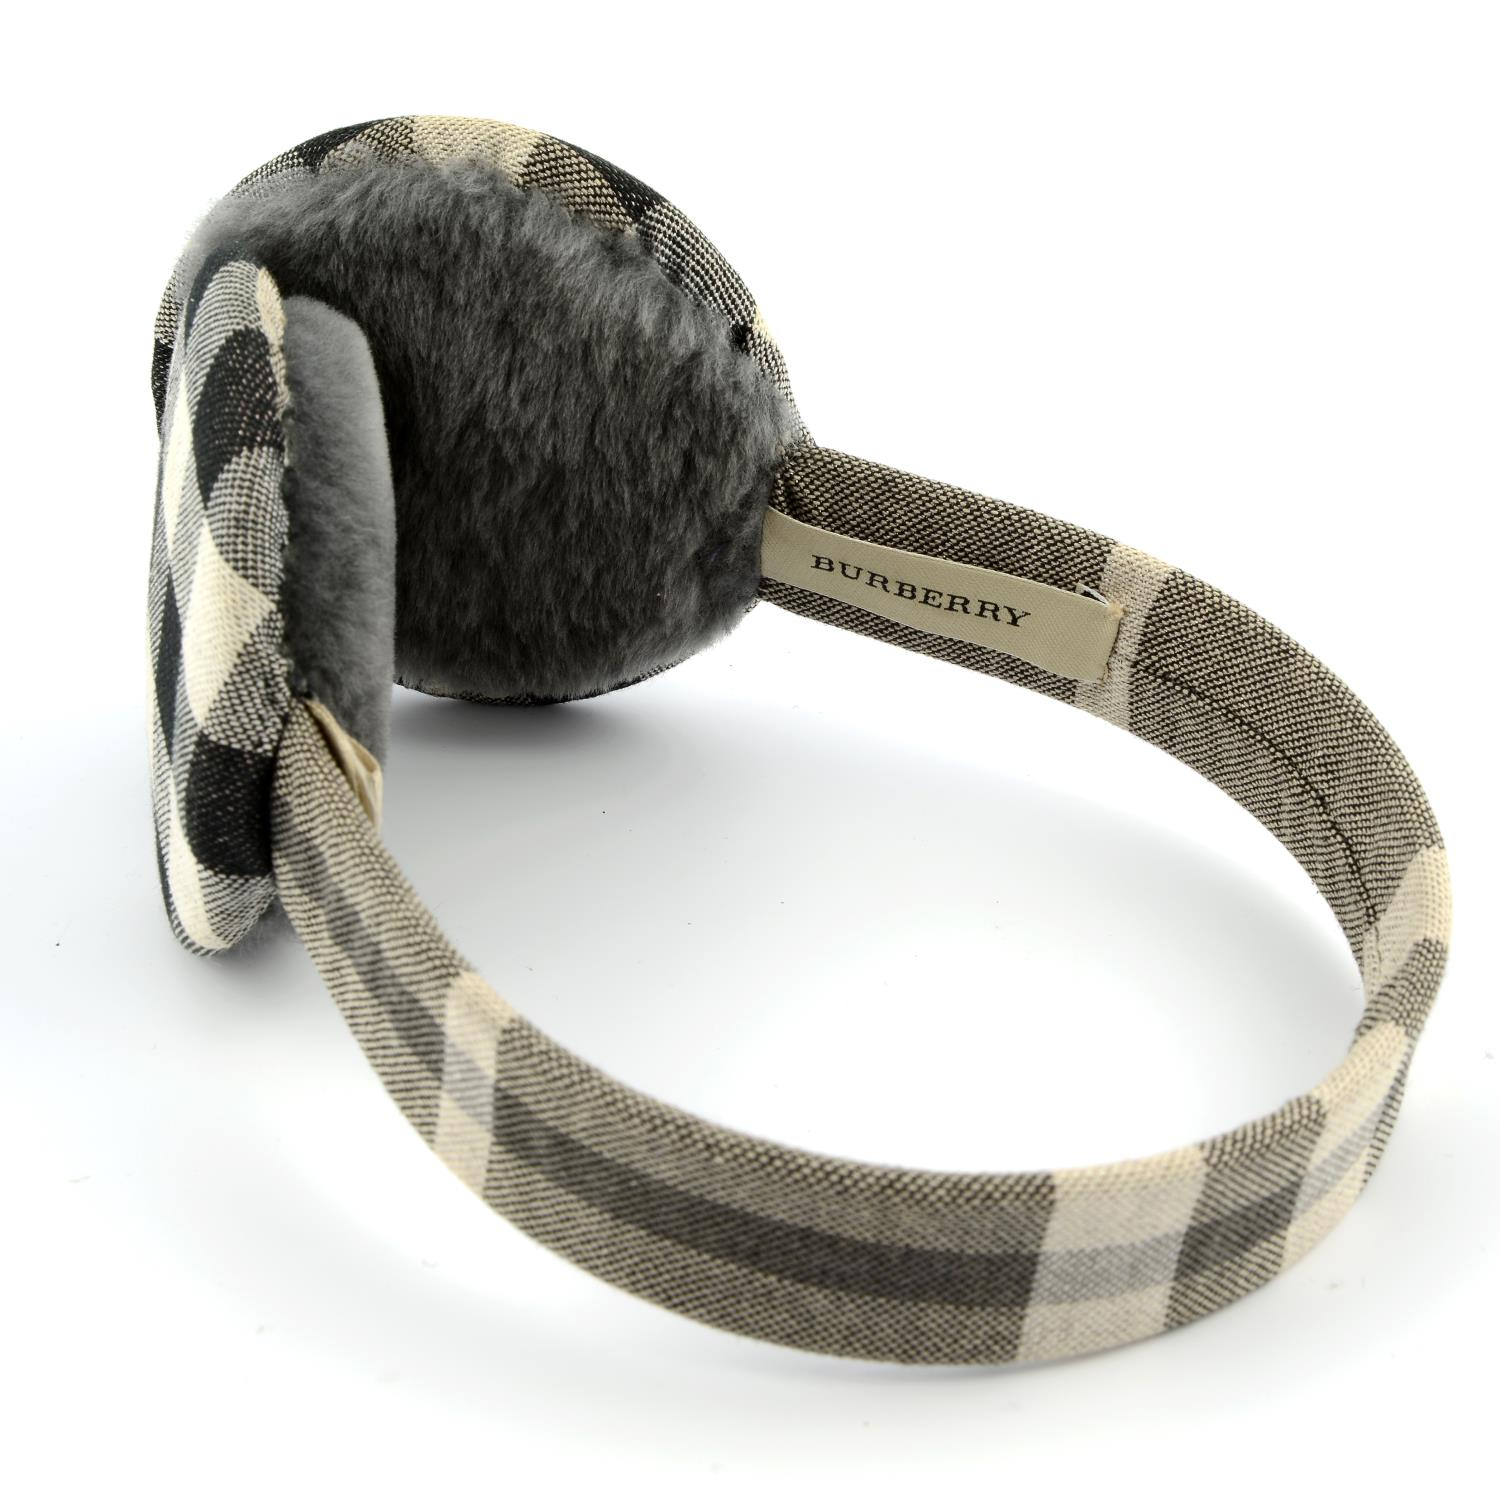 BURBERRY - a pair of ear muffs. - Image 3 of 4